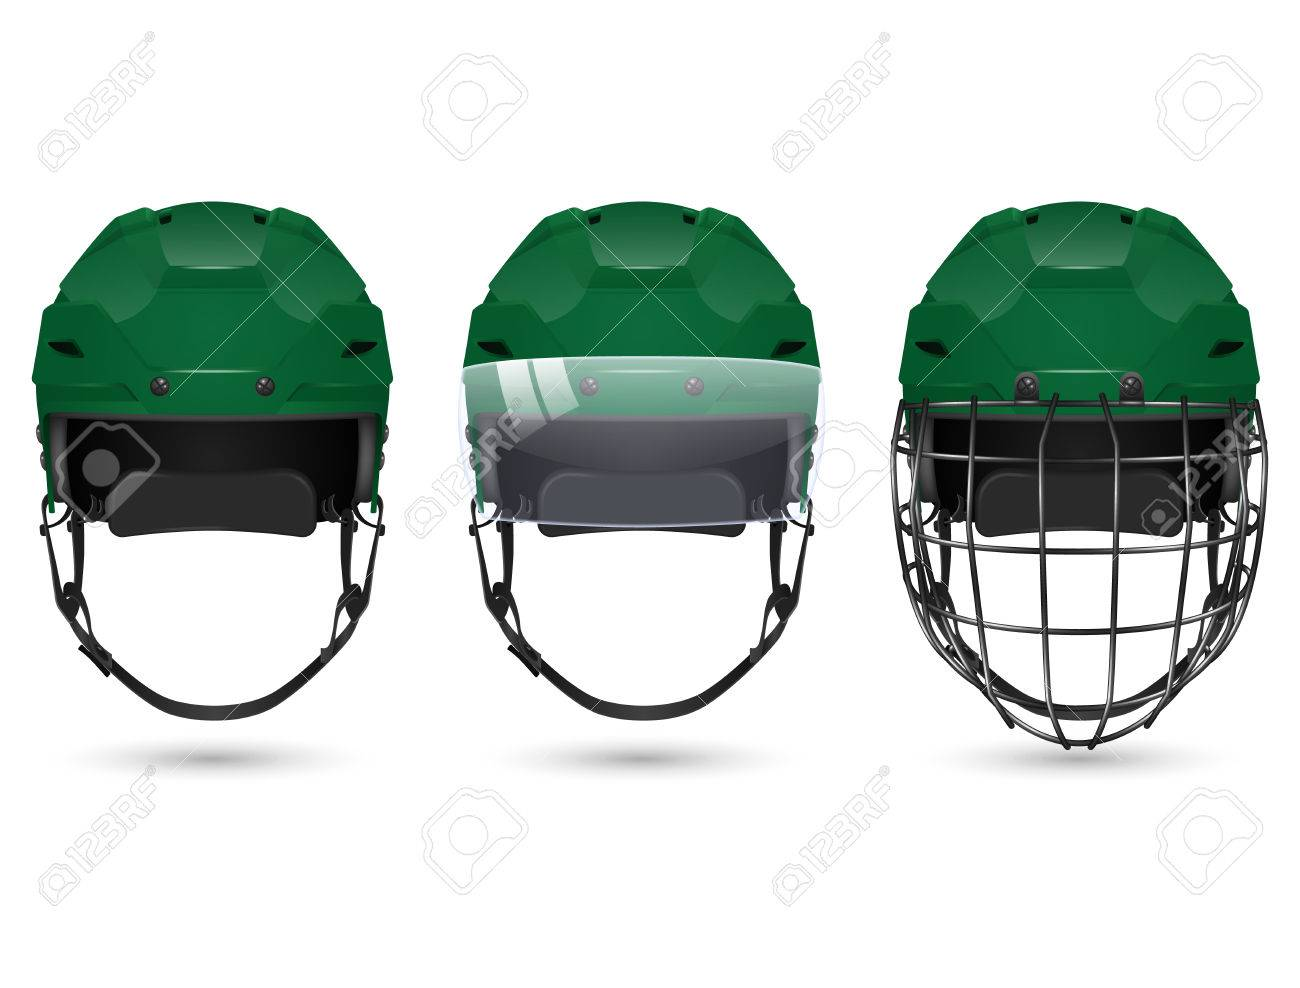 4749e4c8 3d realistic green hockey helmet in three varieties - without protection,  with visor and goalkeepers